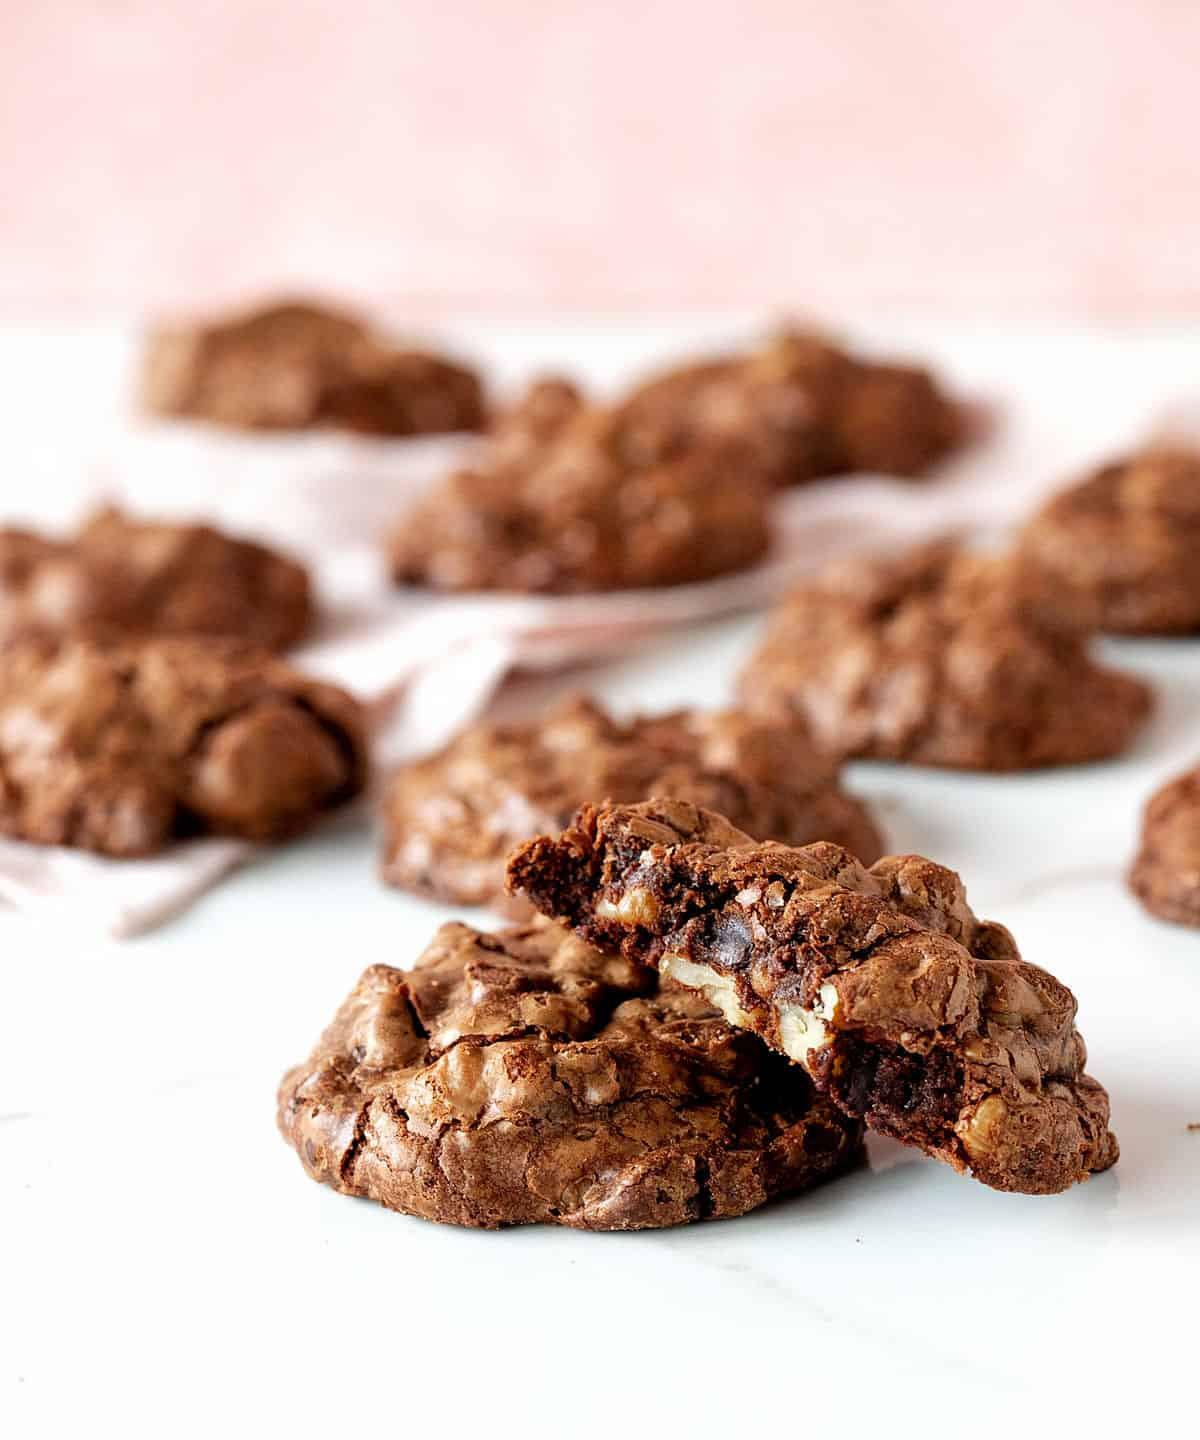 Several chocolate cookies, one bitter, on white and pink surface